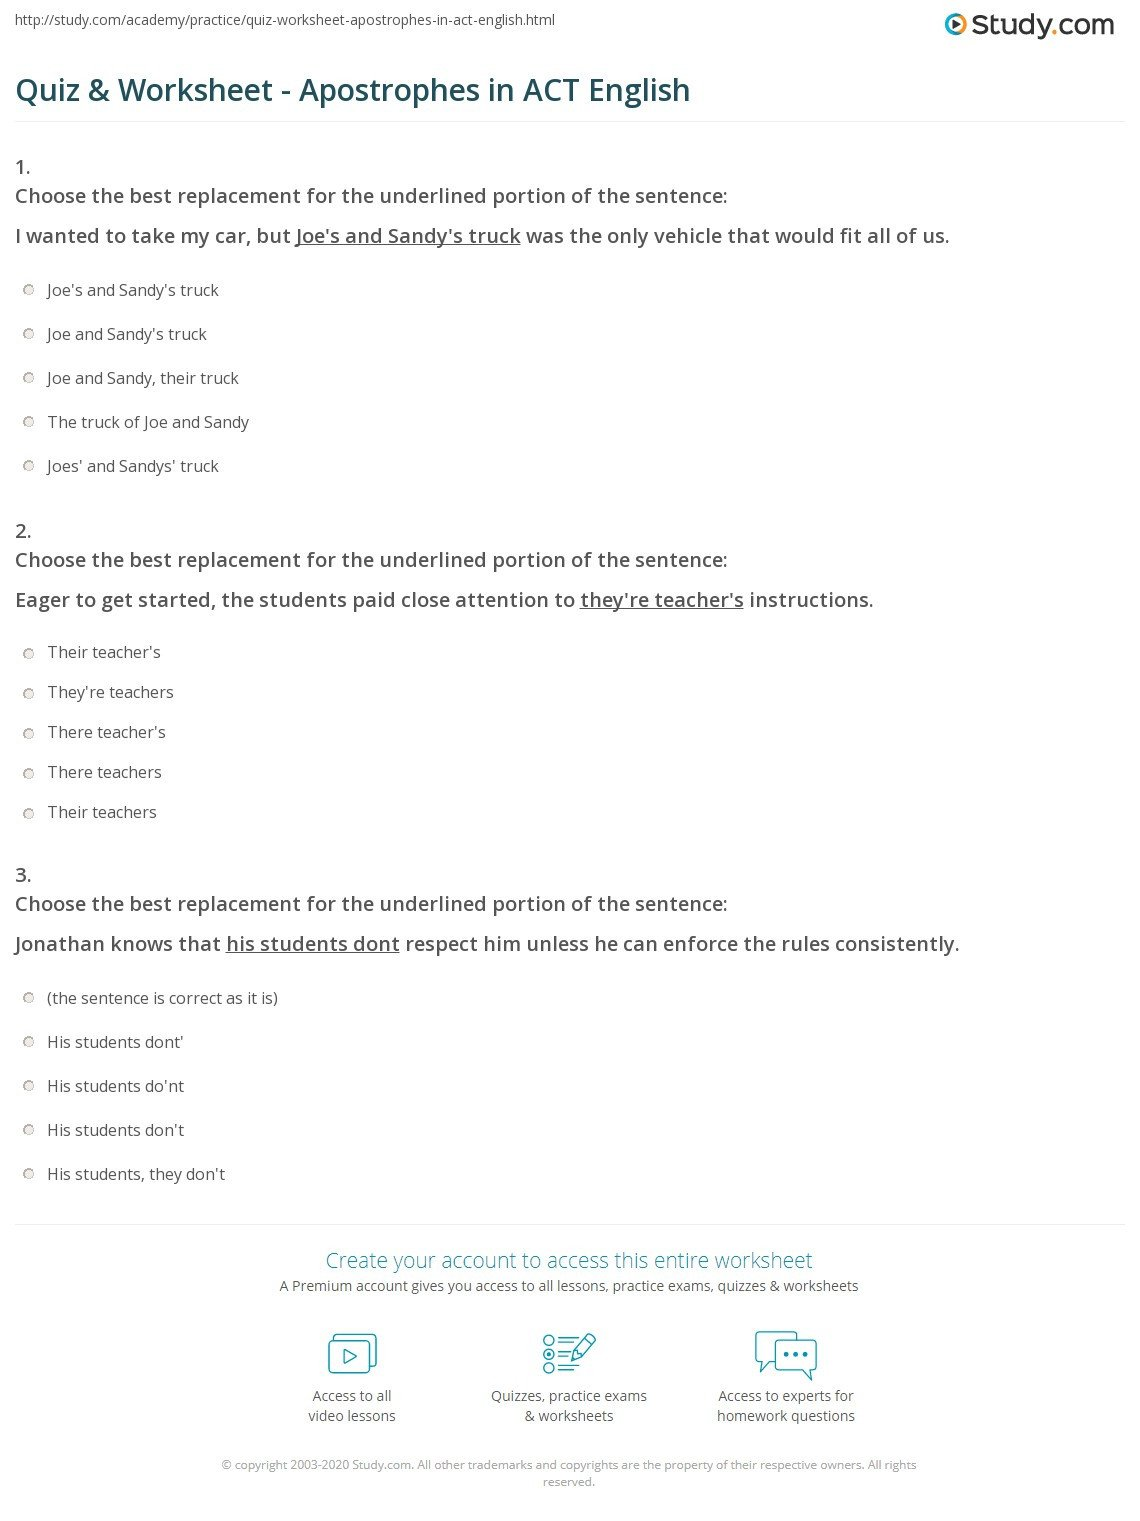 Act Grammar Worksheets Quiz Worksheet Apostrophes In Act English Study Grammar